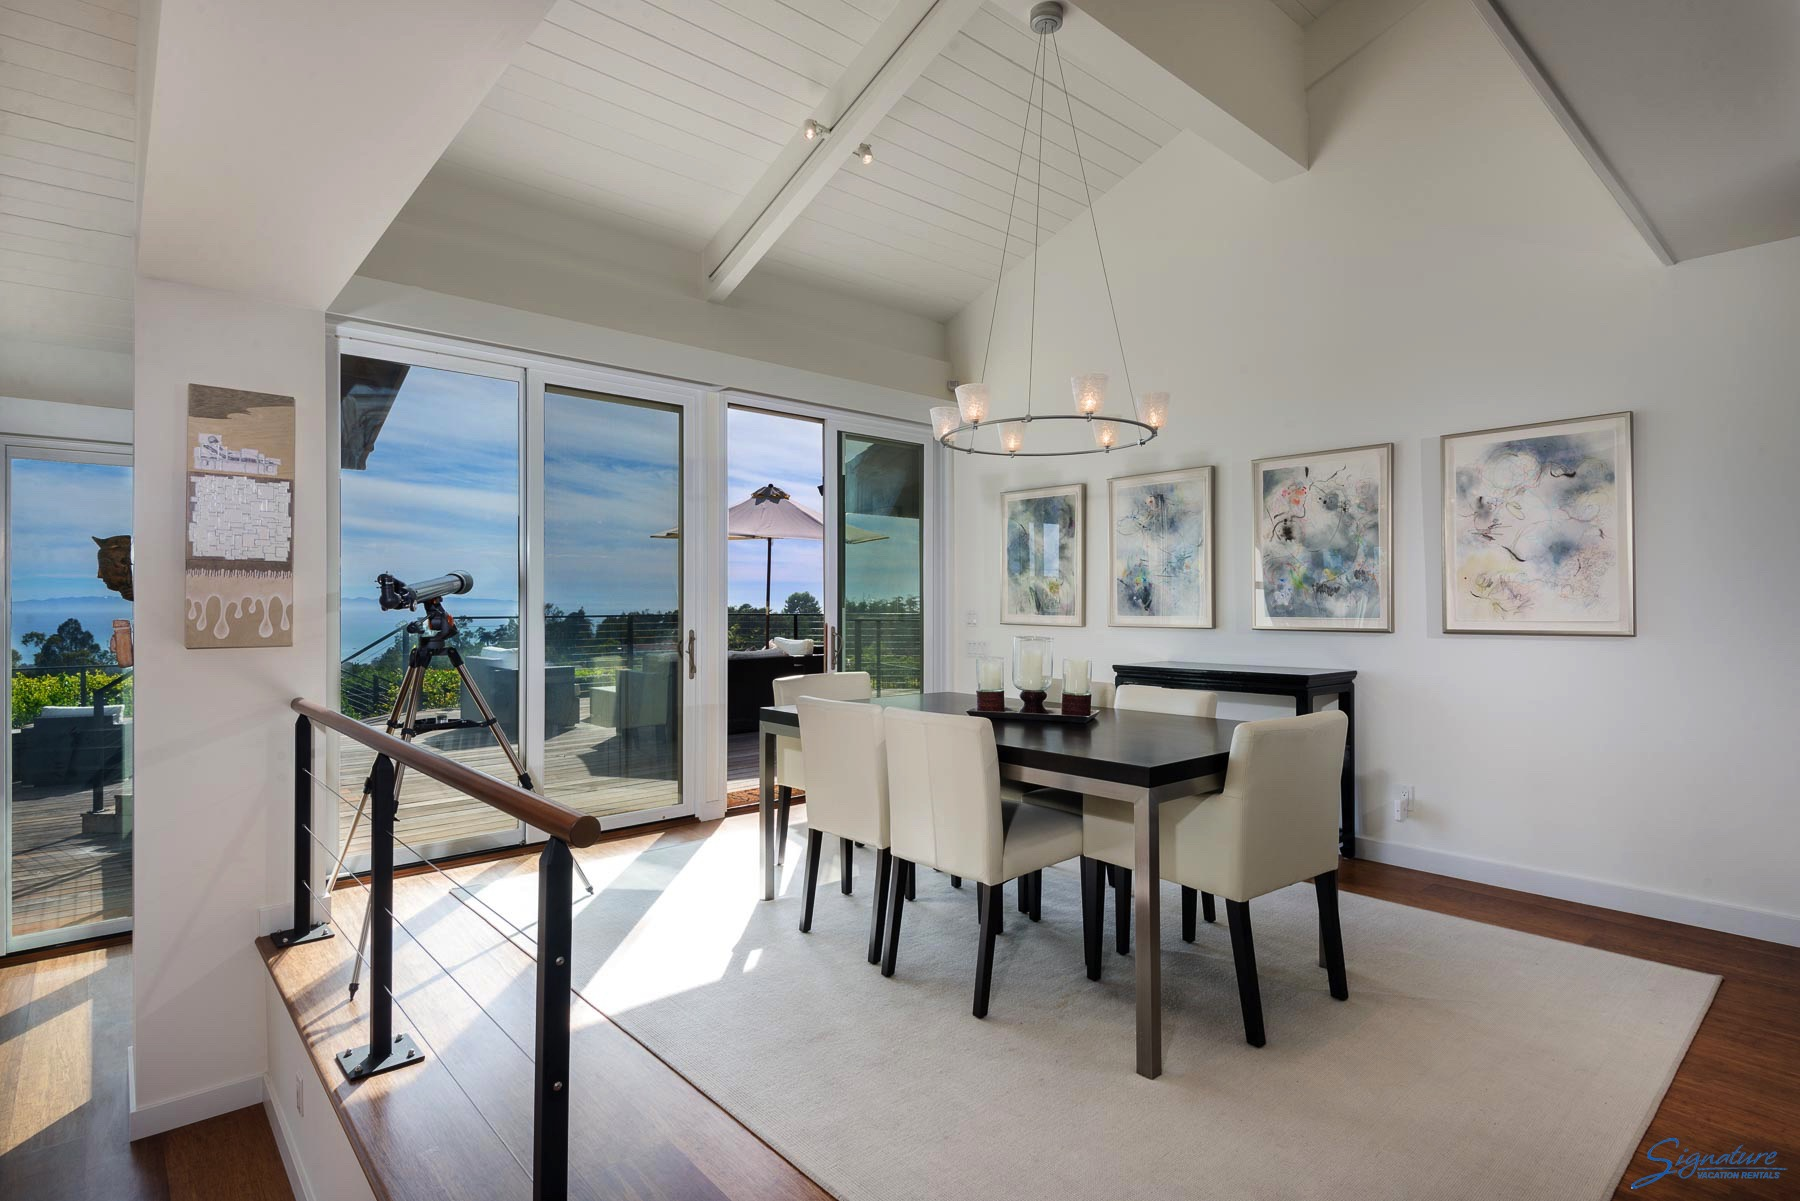 The dining area showcases the wonderful views and has a door to the deck